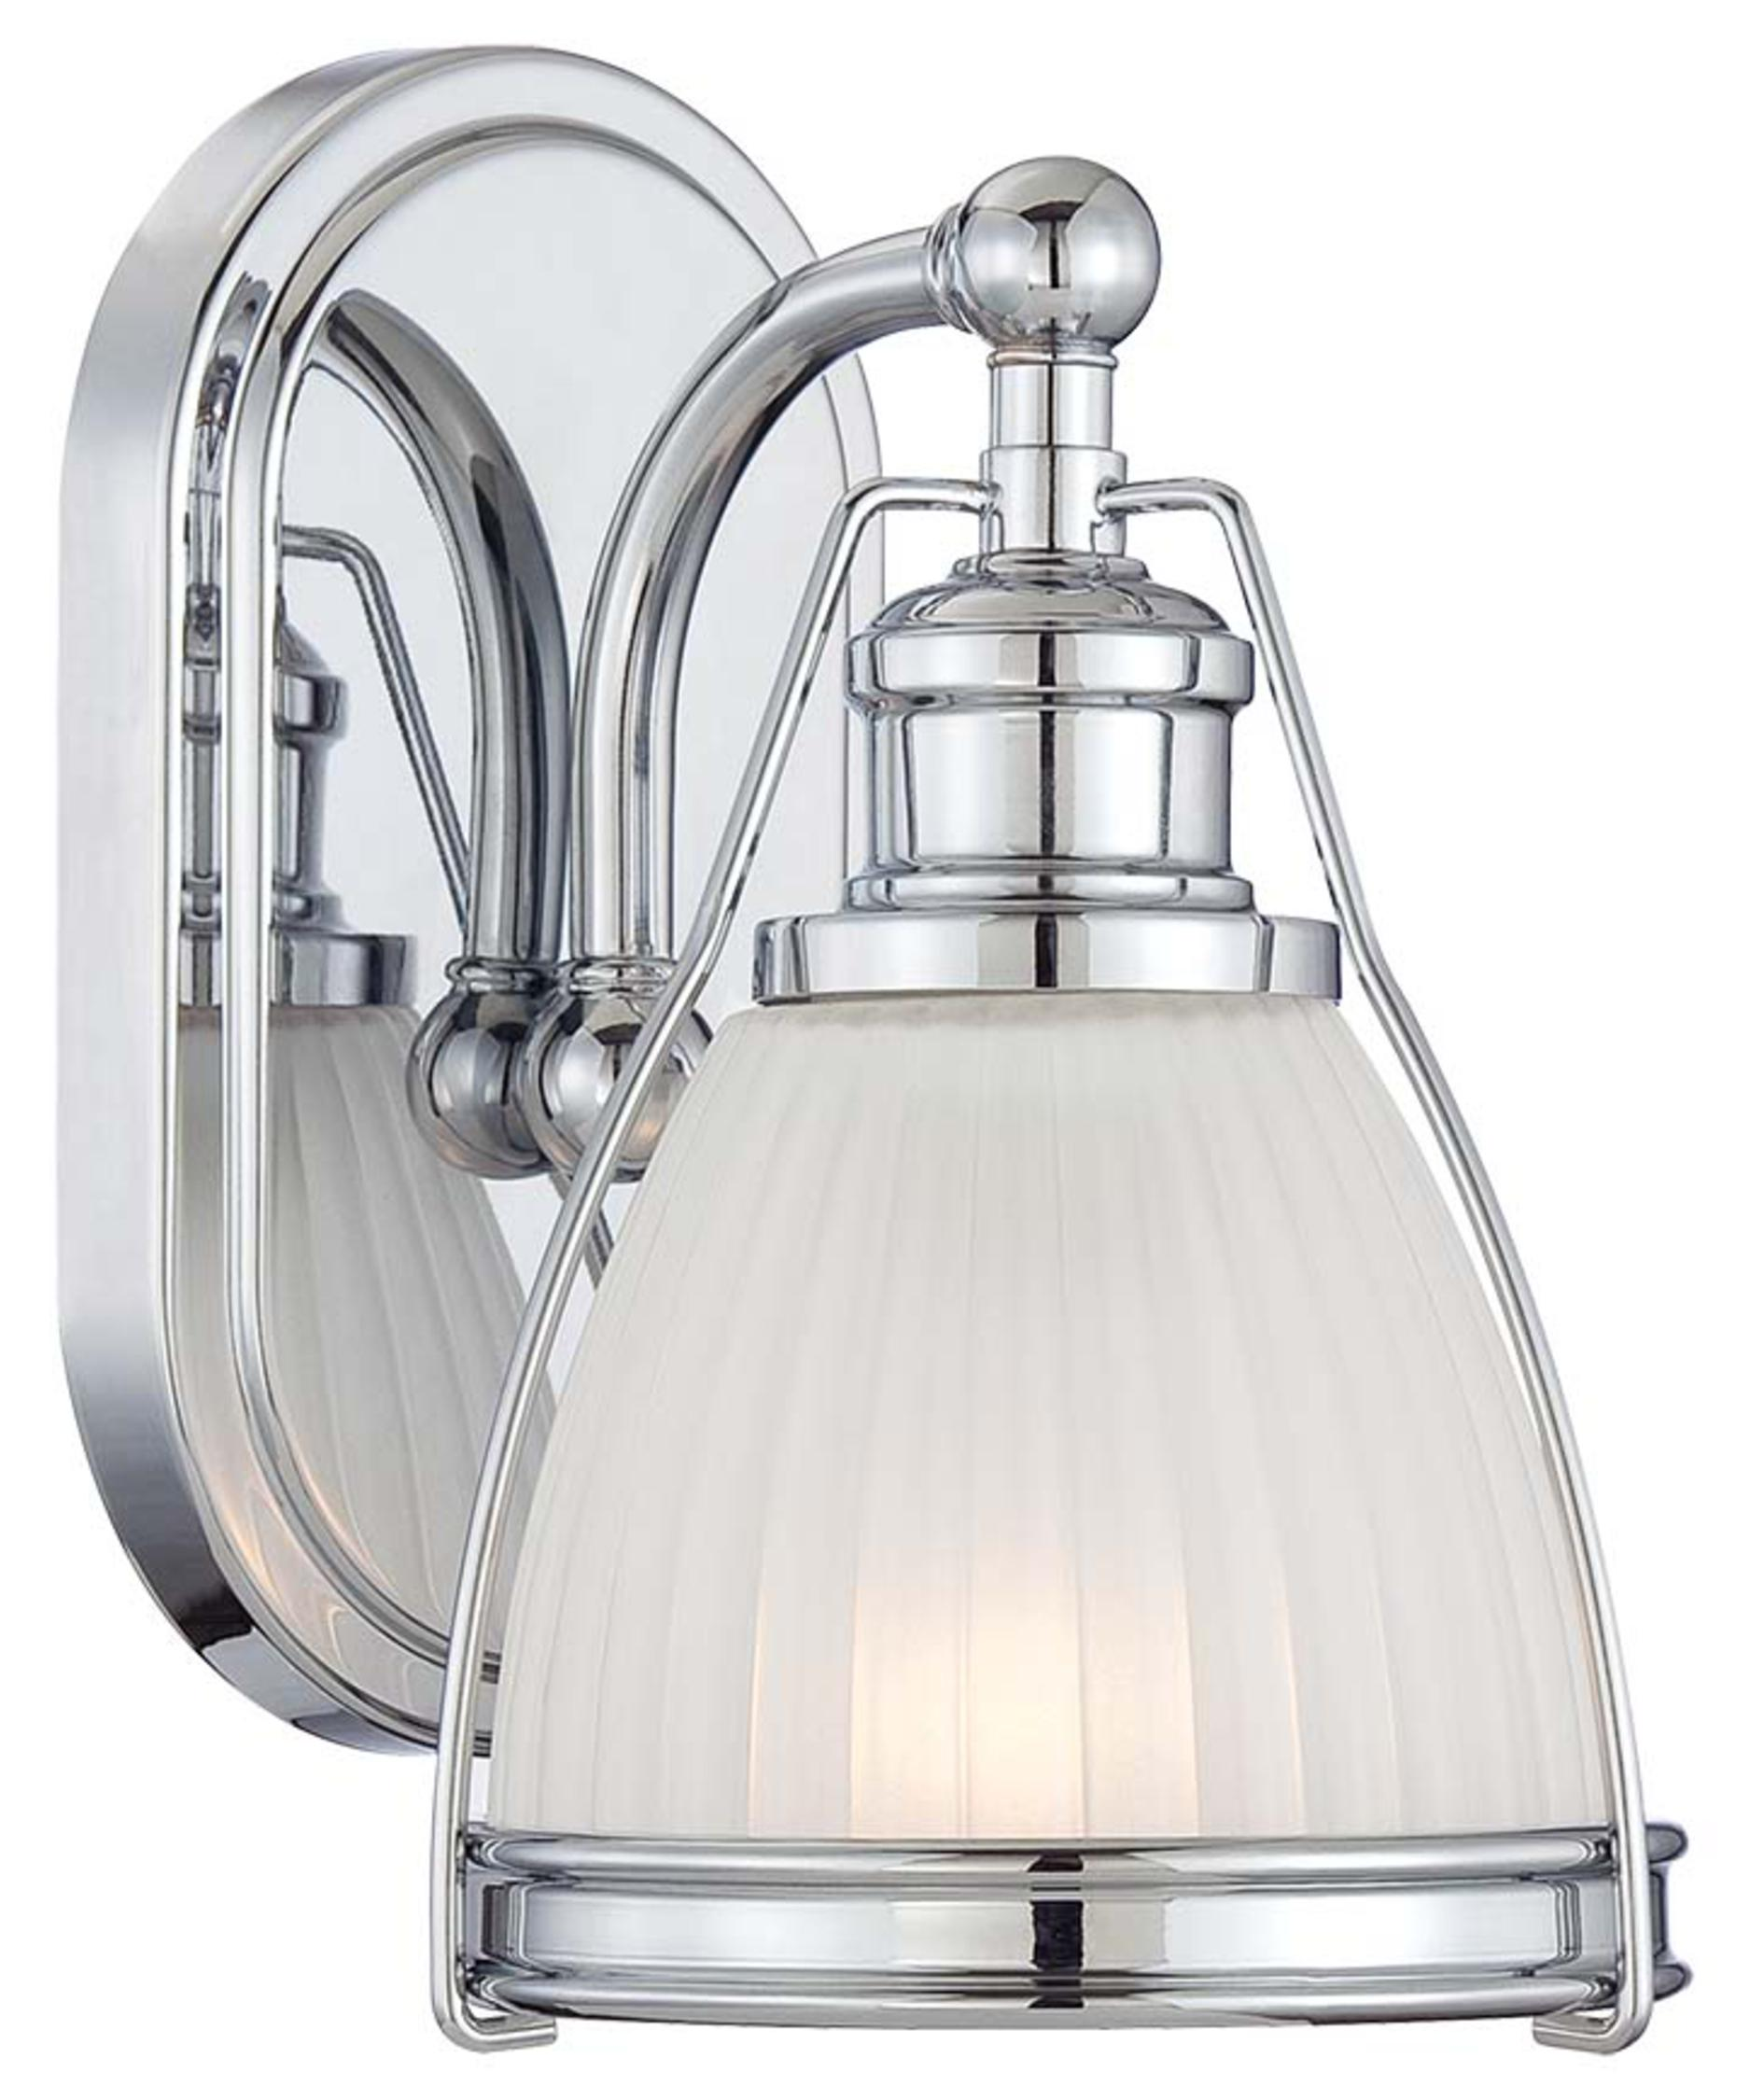 Transitional Bathroom Wall Sconces minka lavery 5791 transitional 6 inch wide wall sconce | capitol